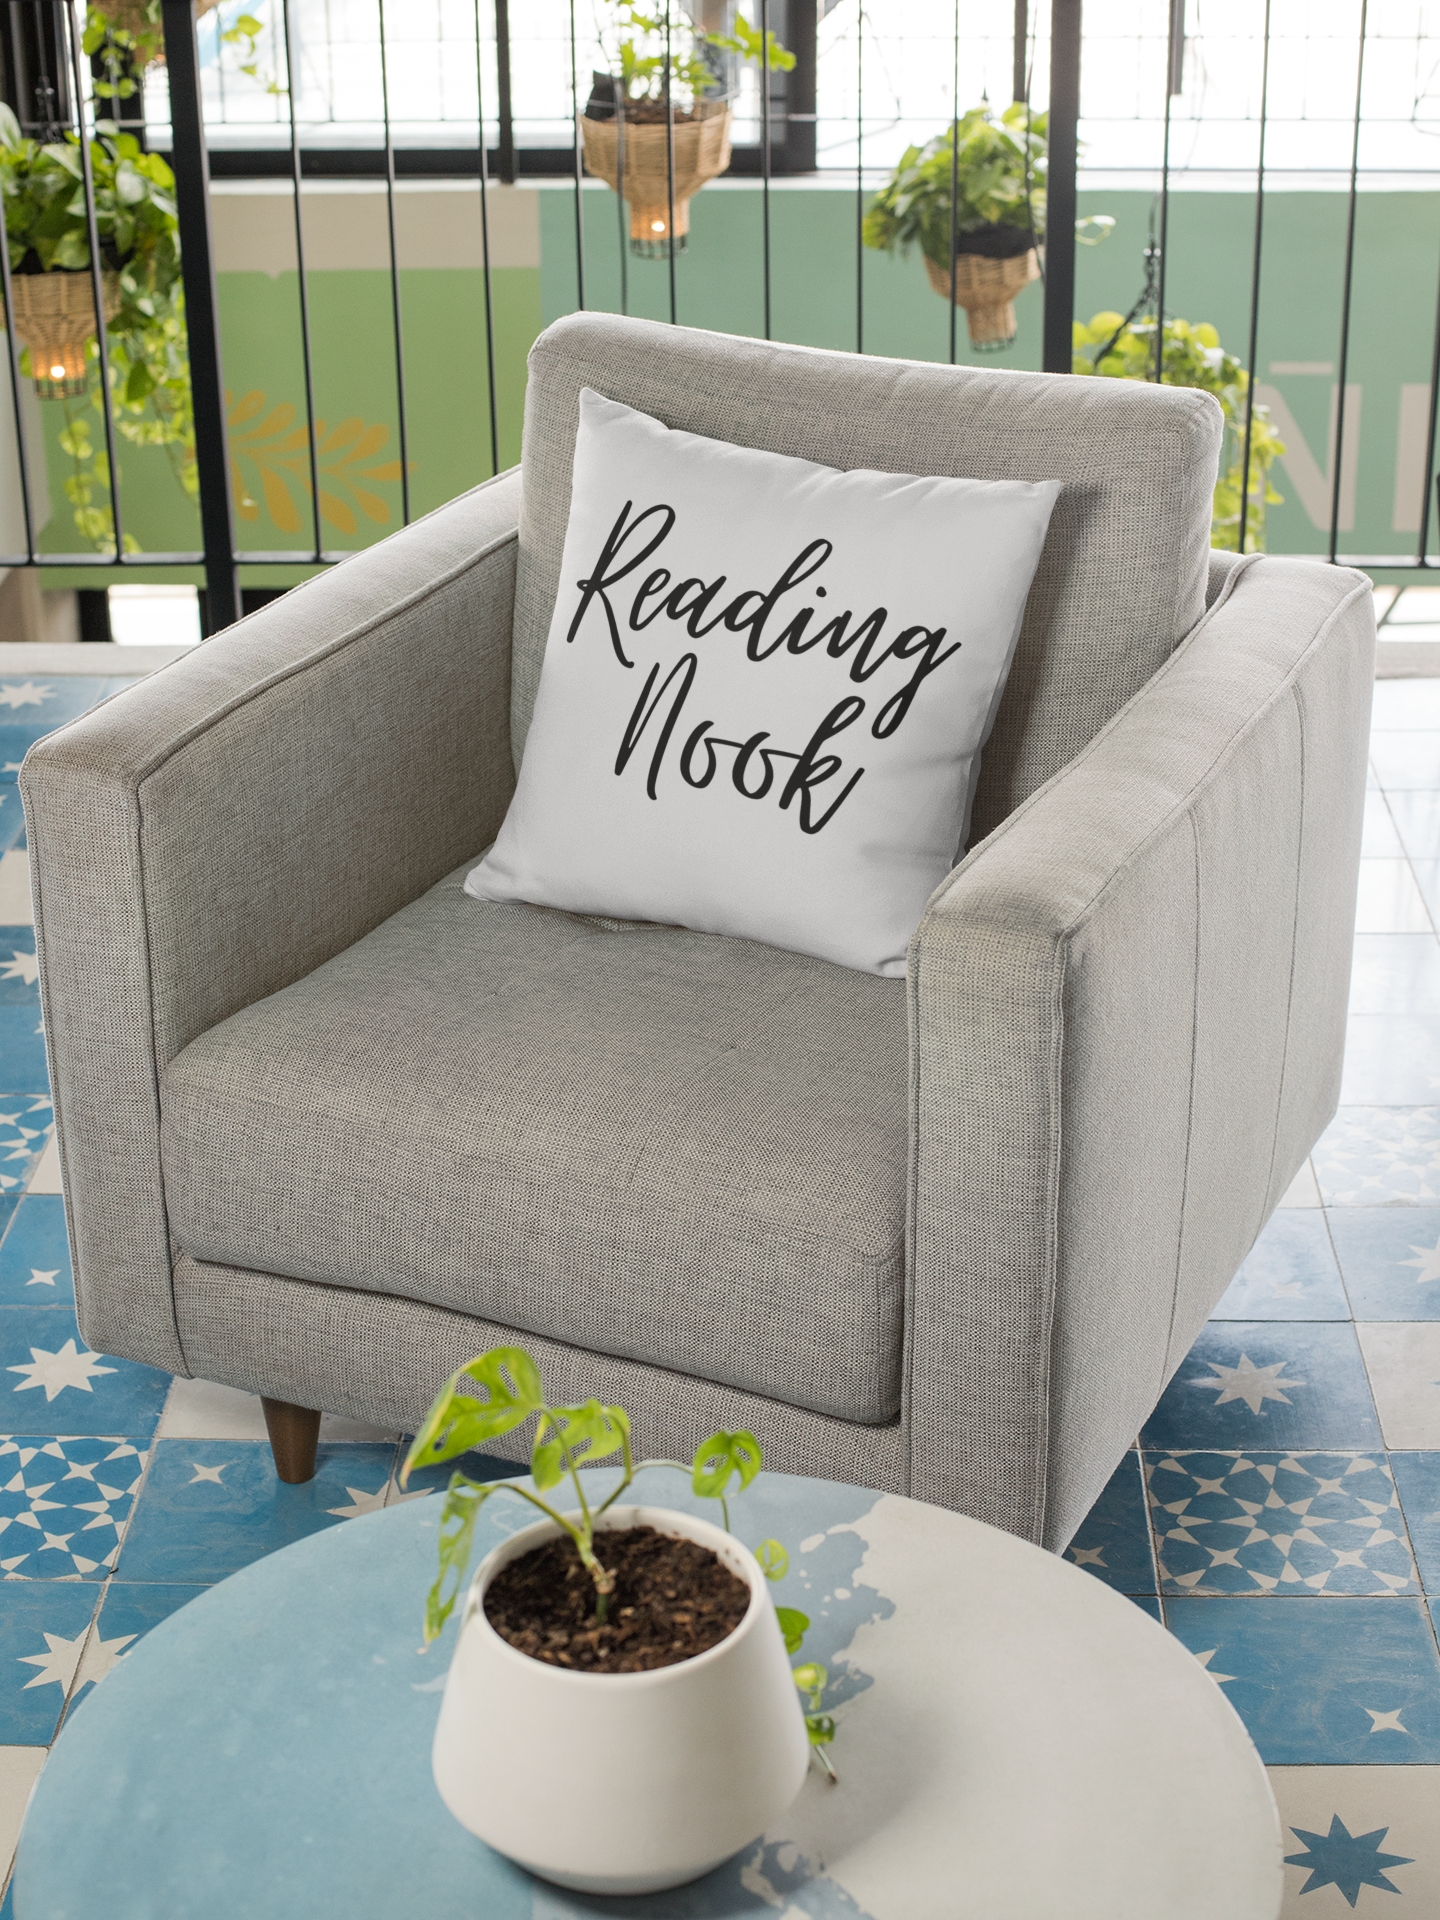 Reading Nook Pillow - A Bookish Haven